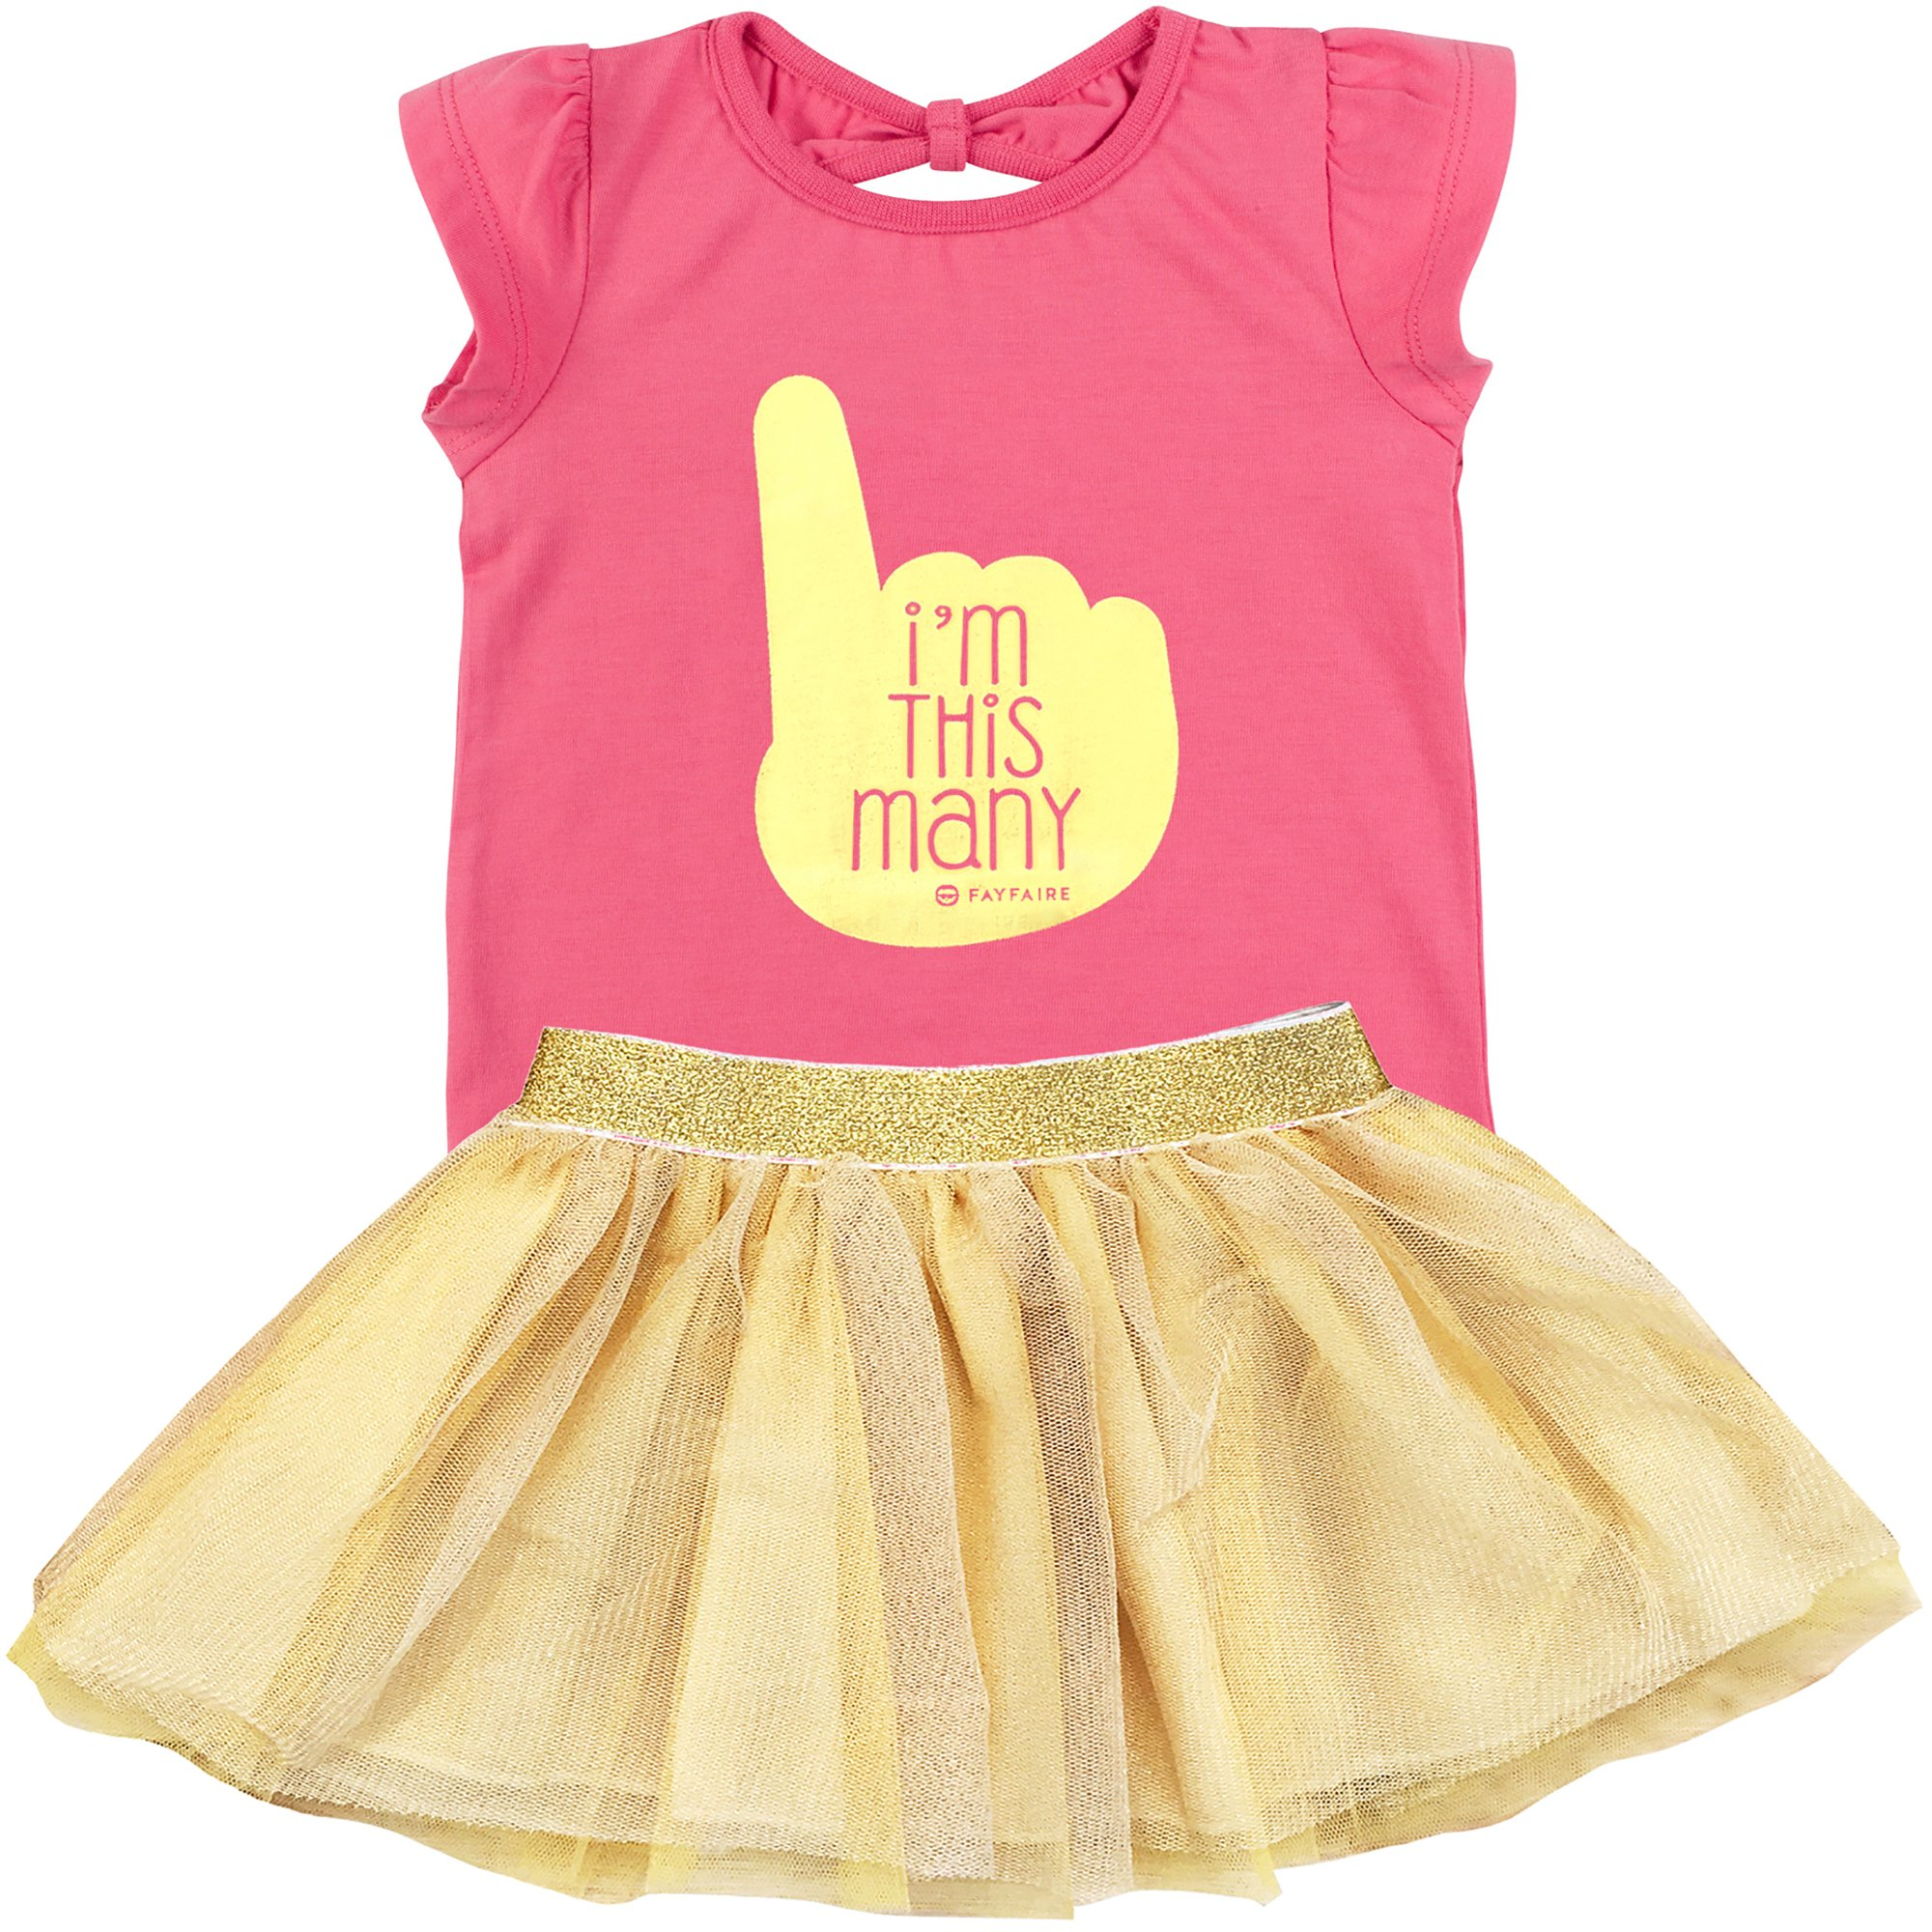 Fayfaire First Birthday Shirt Outfit: Boutique Quality 1st Bday Girl I'm This Many 18M